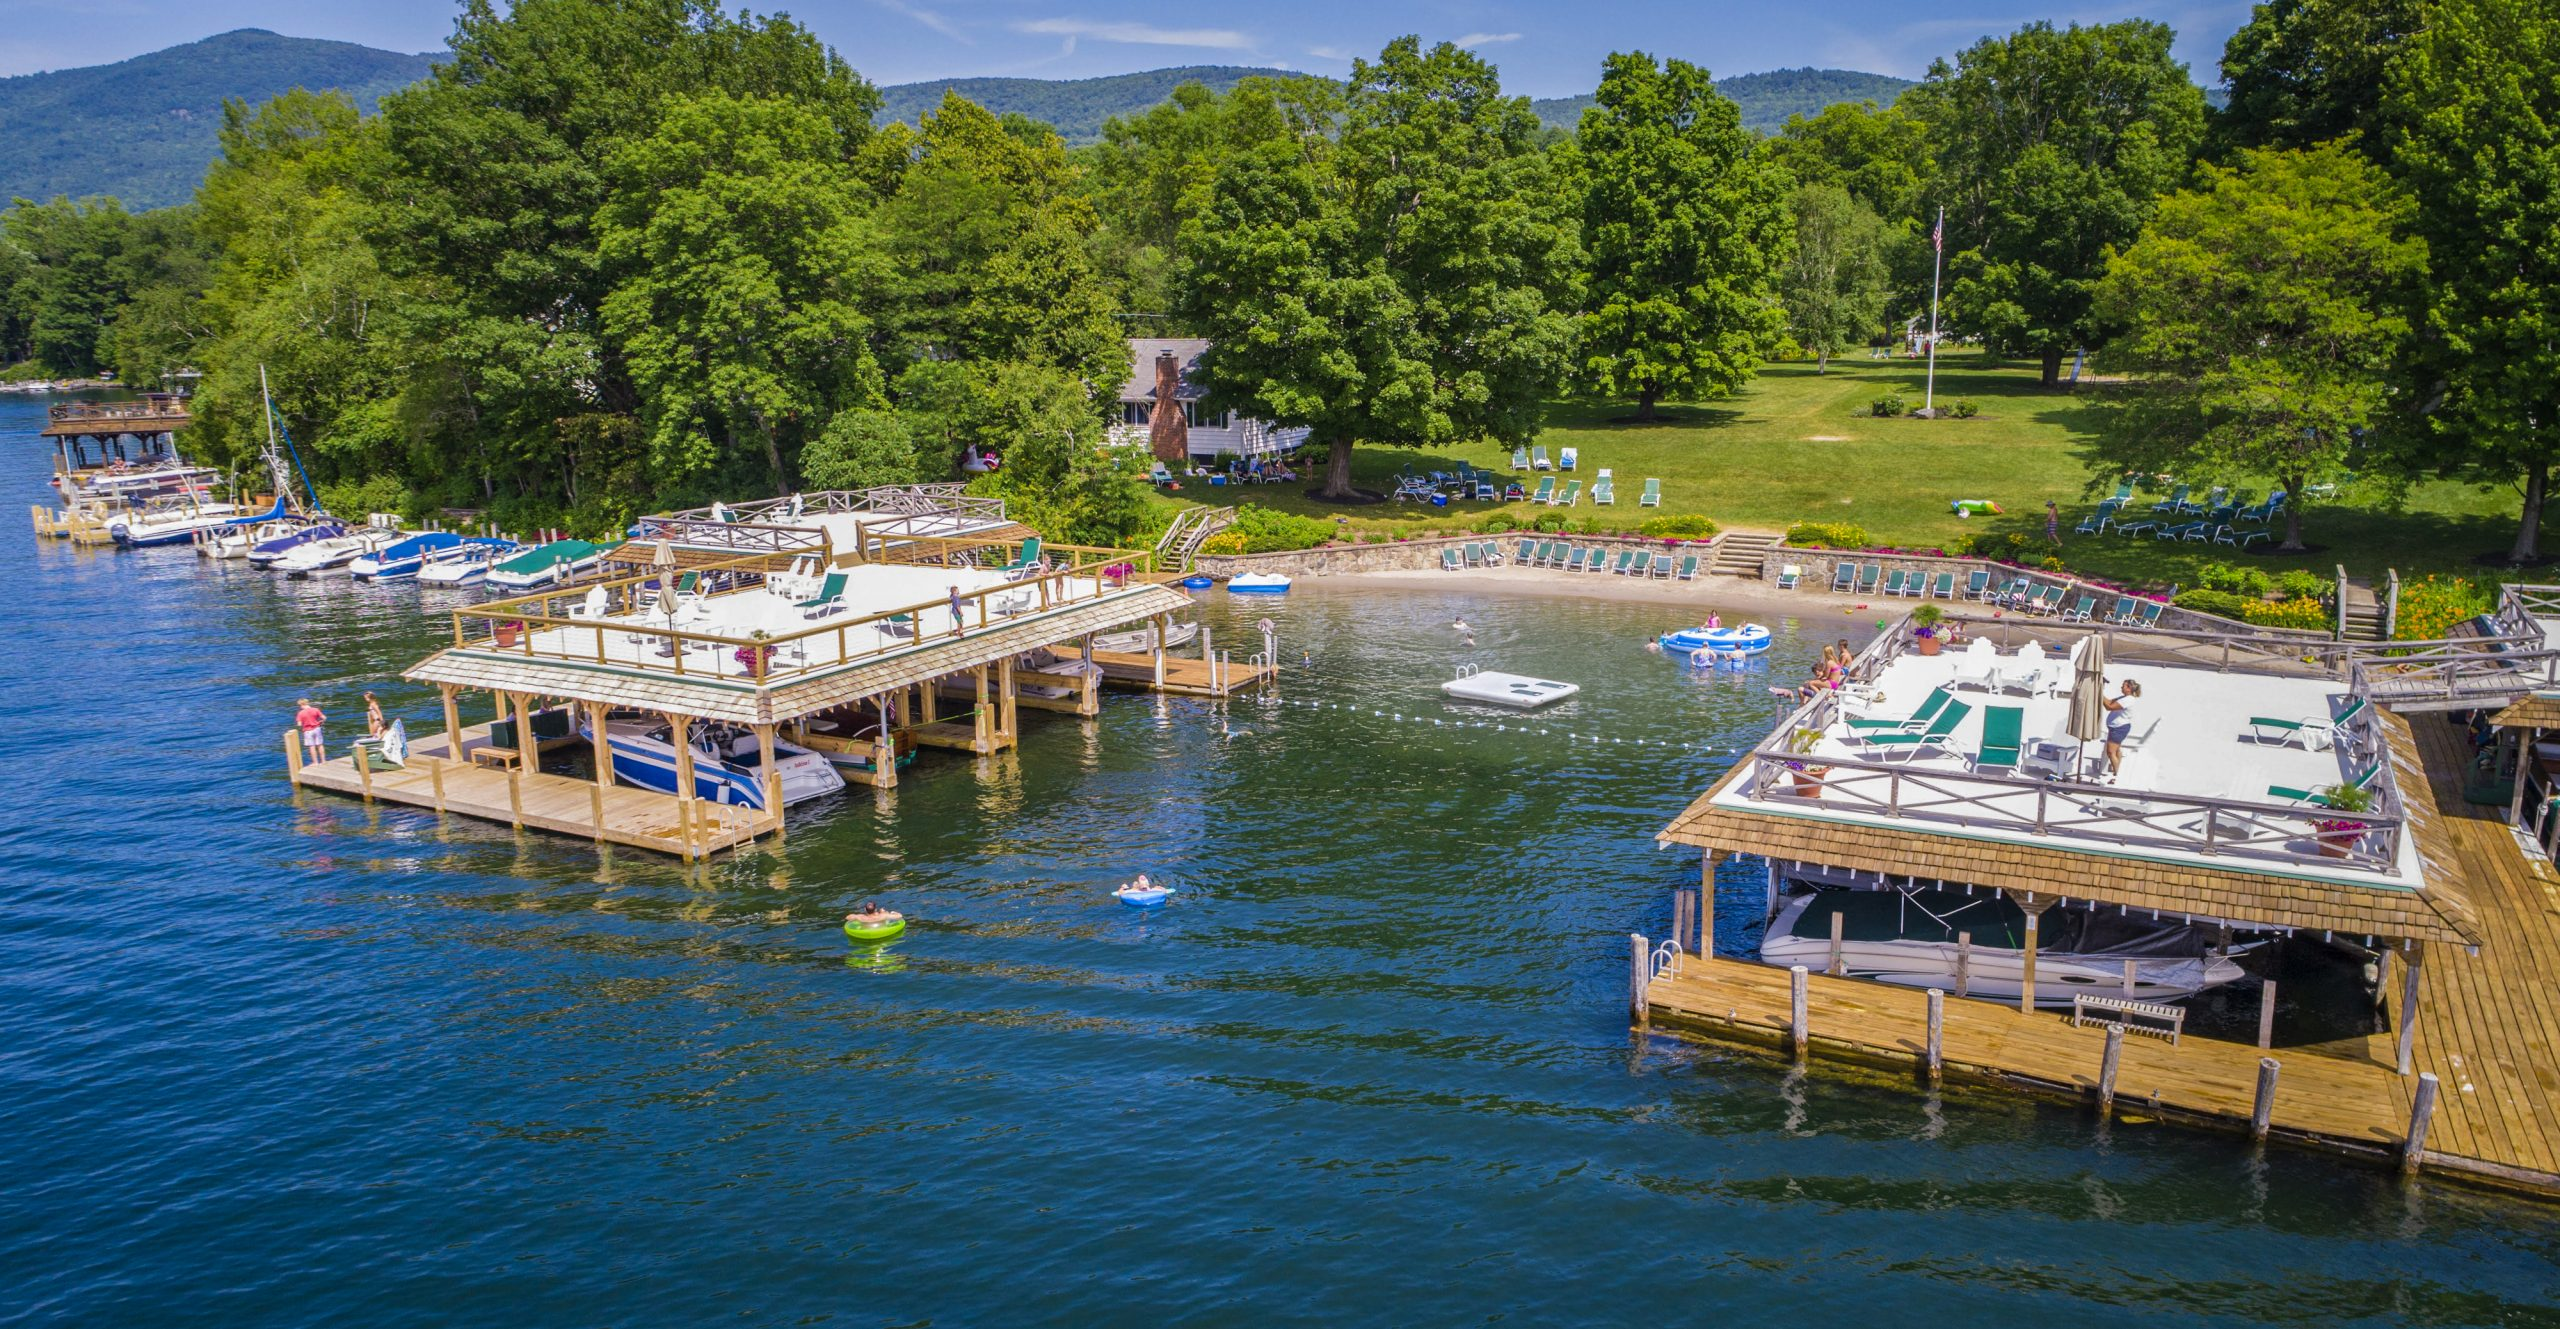 Lake George vacation cabin rentals dock and beach